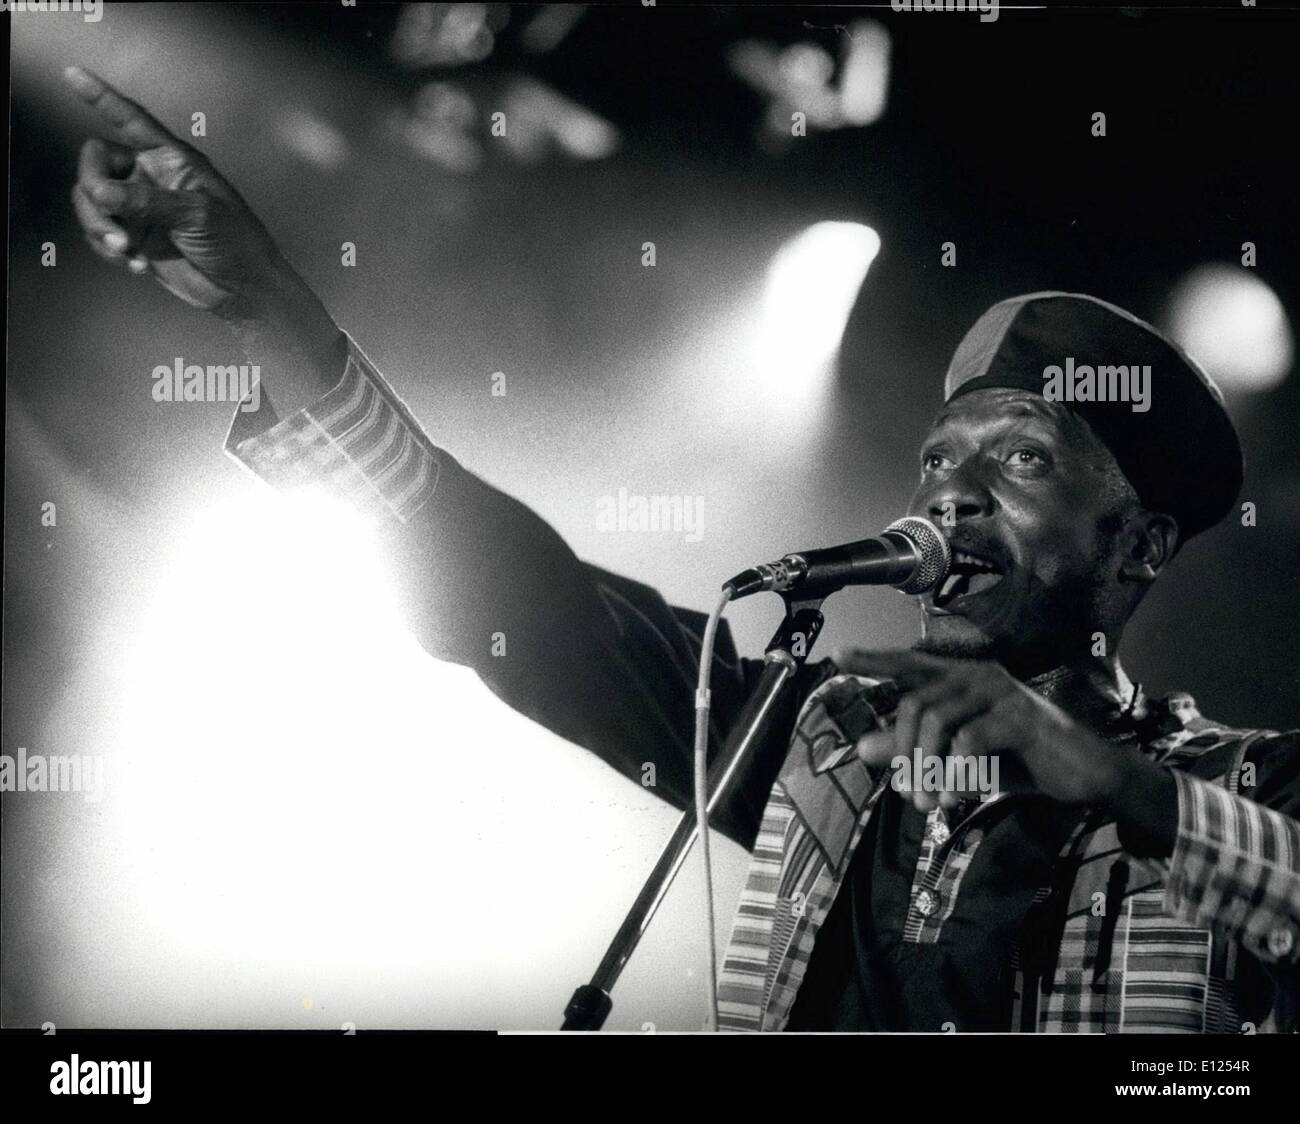 Jul. 07, 1991 - Jimmy Cliff in Montreux: Reggae-star Jimmy Cliff is seen here during his performance at the year's Montreux Jazz Festival July 17th. - Stock Image